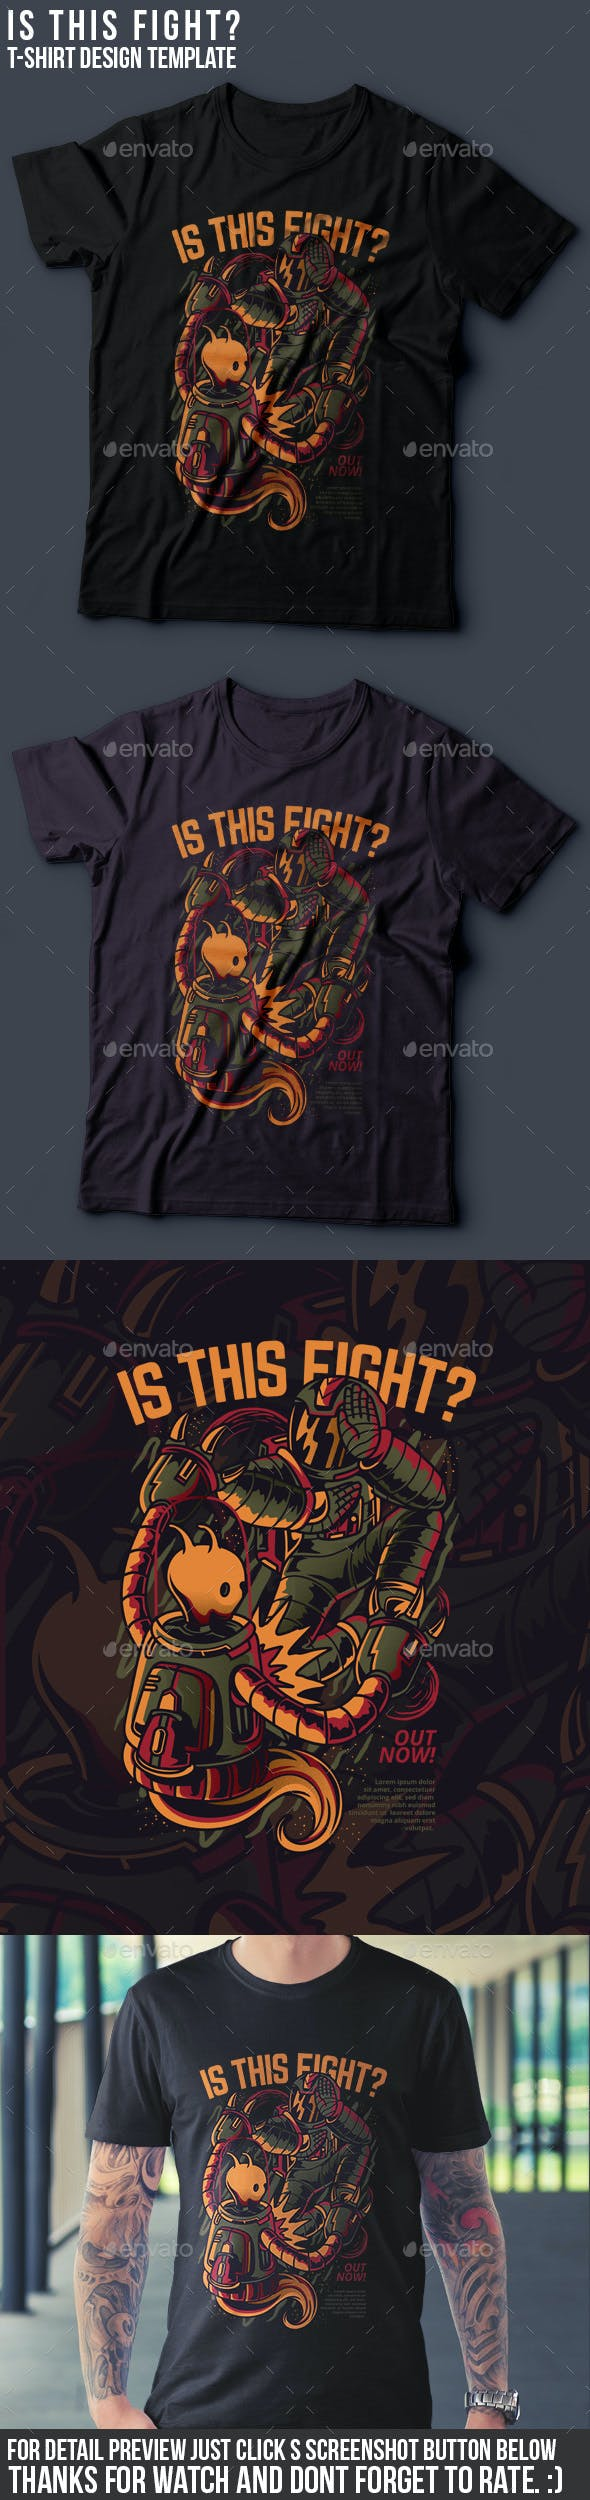 Is This Fight? T-Shirt Design